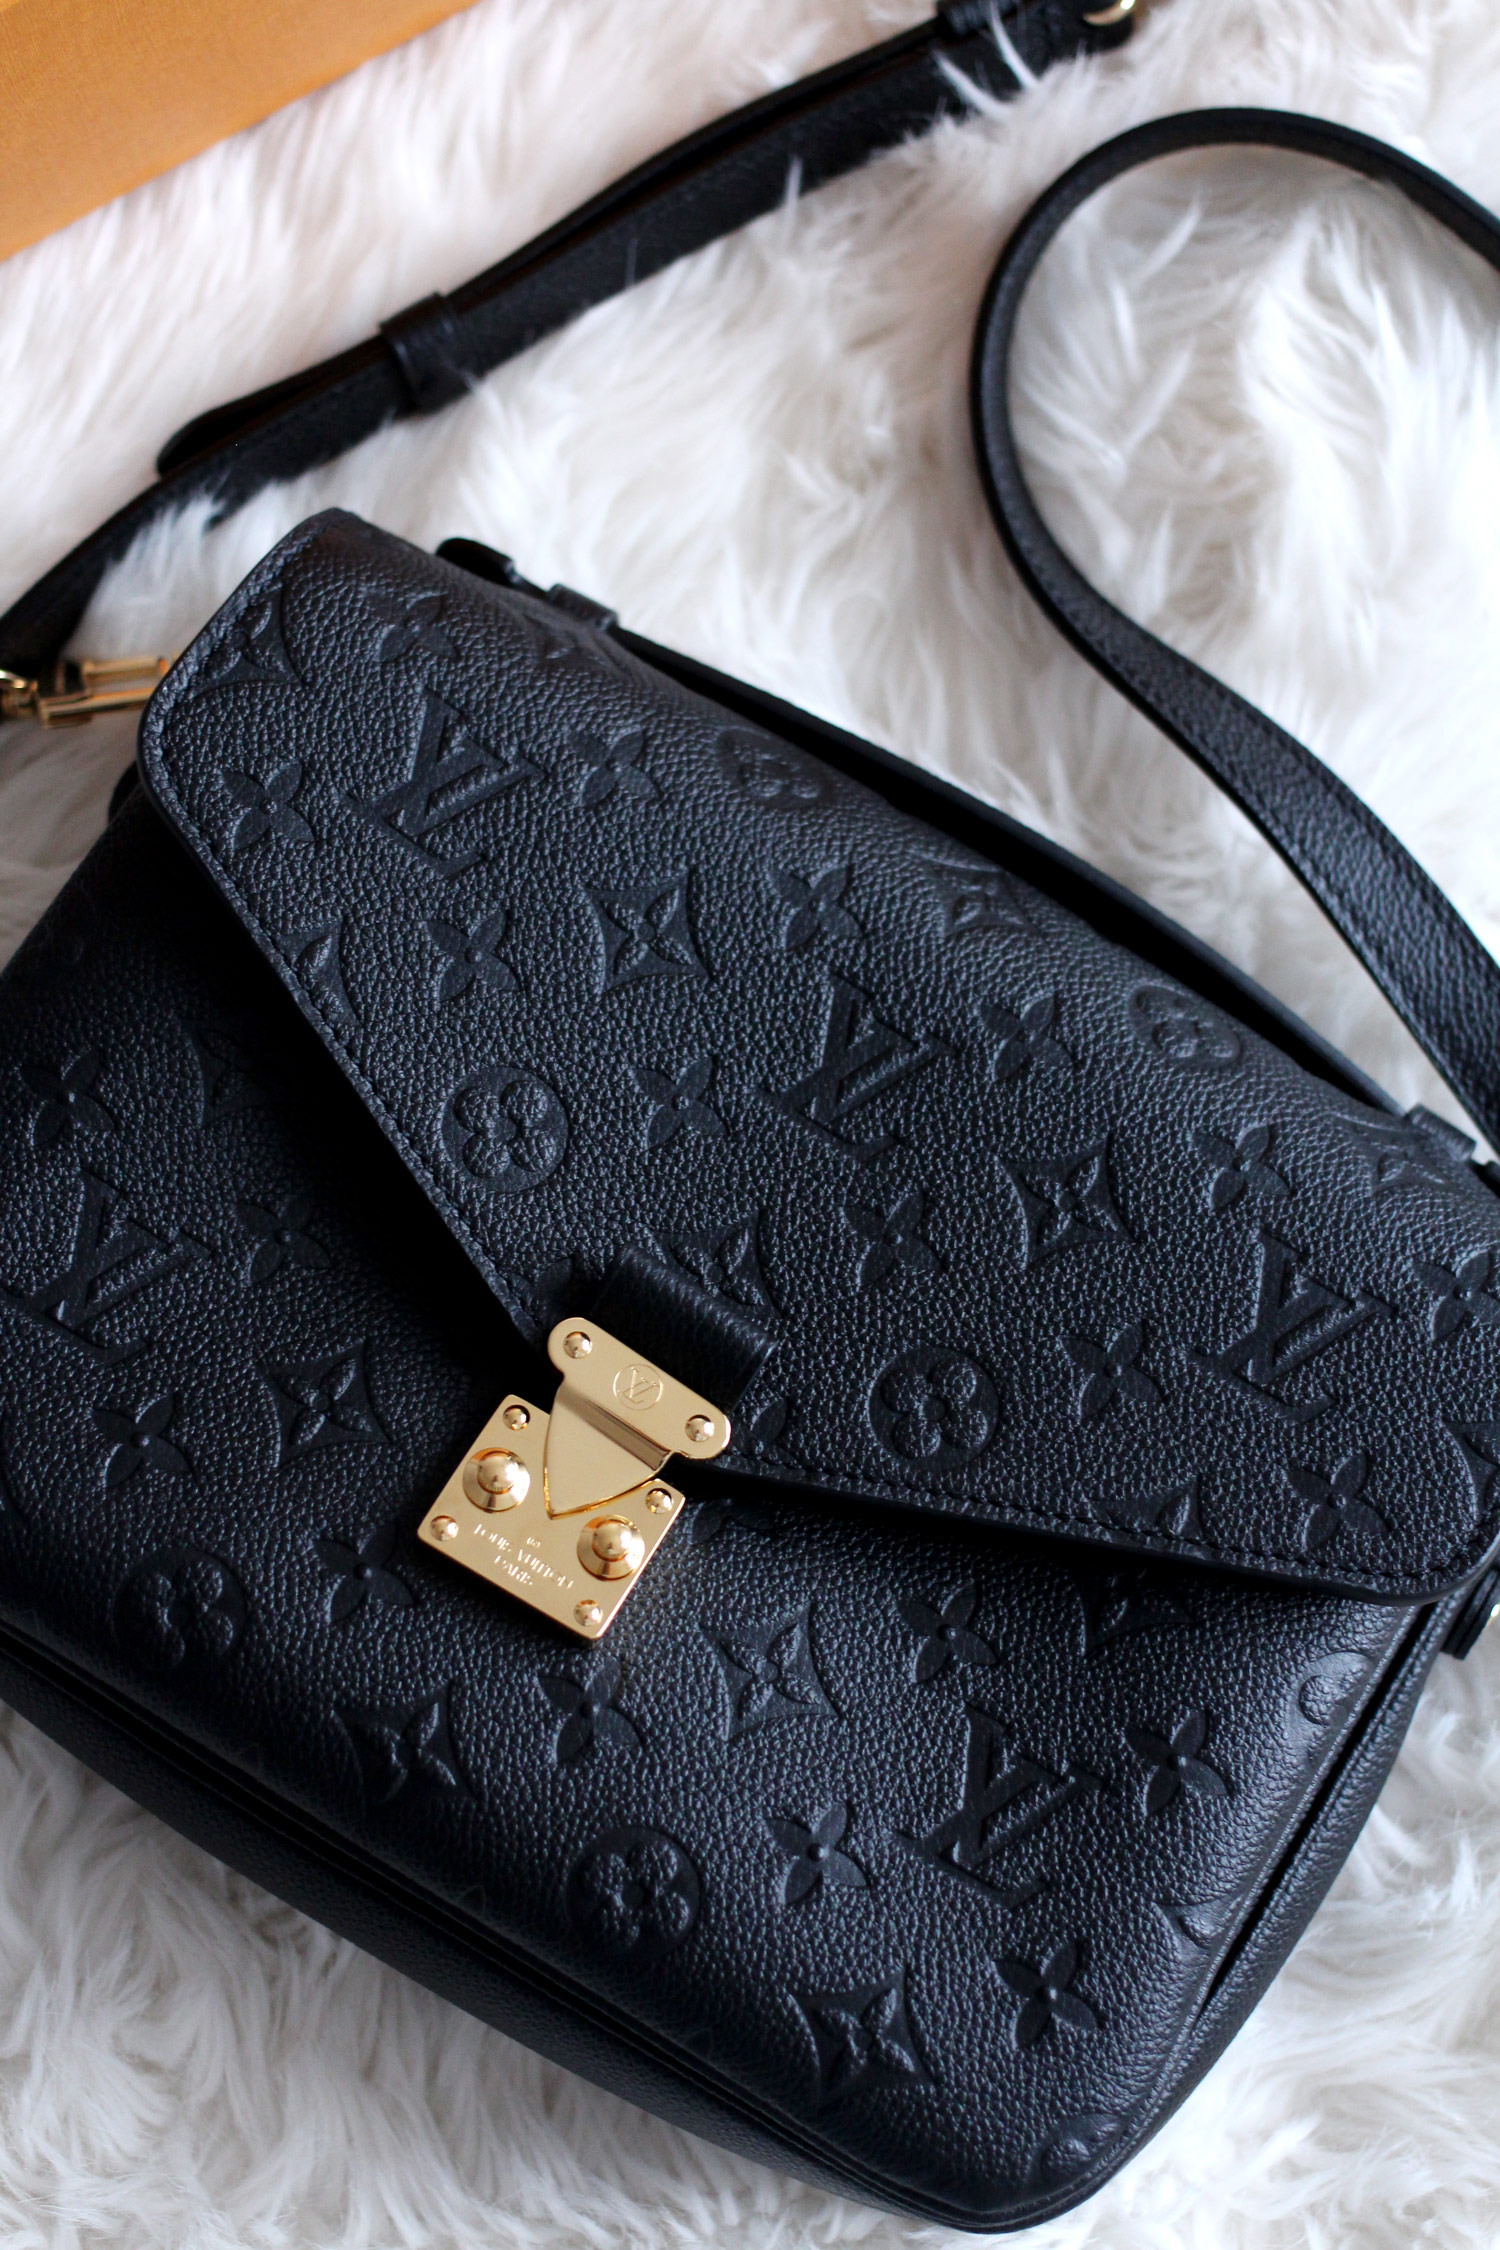 louis-vuitton-pochette-metis-Monogram-Empreinte-Leather-black-bag-review-6